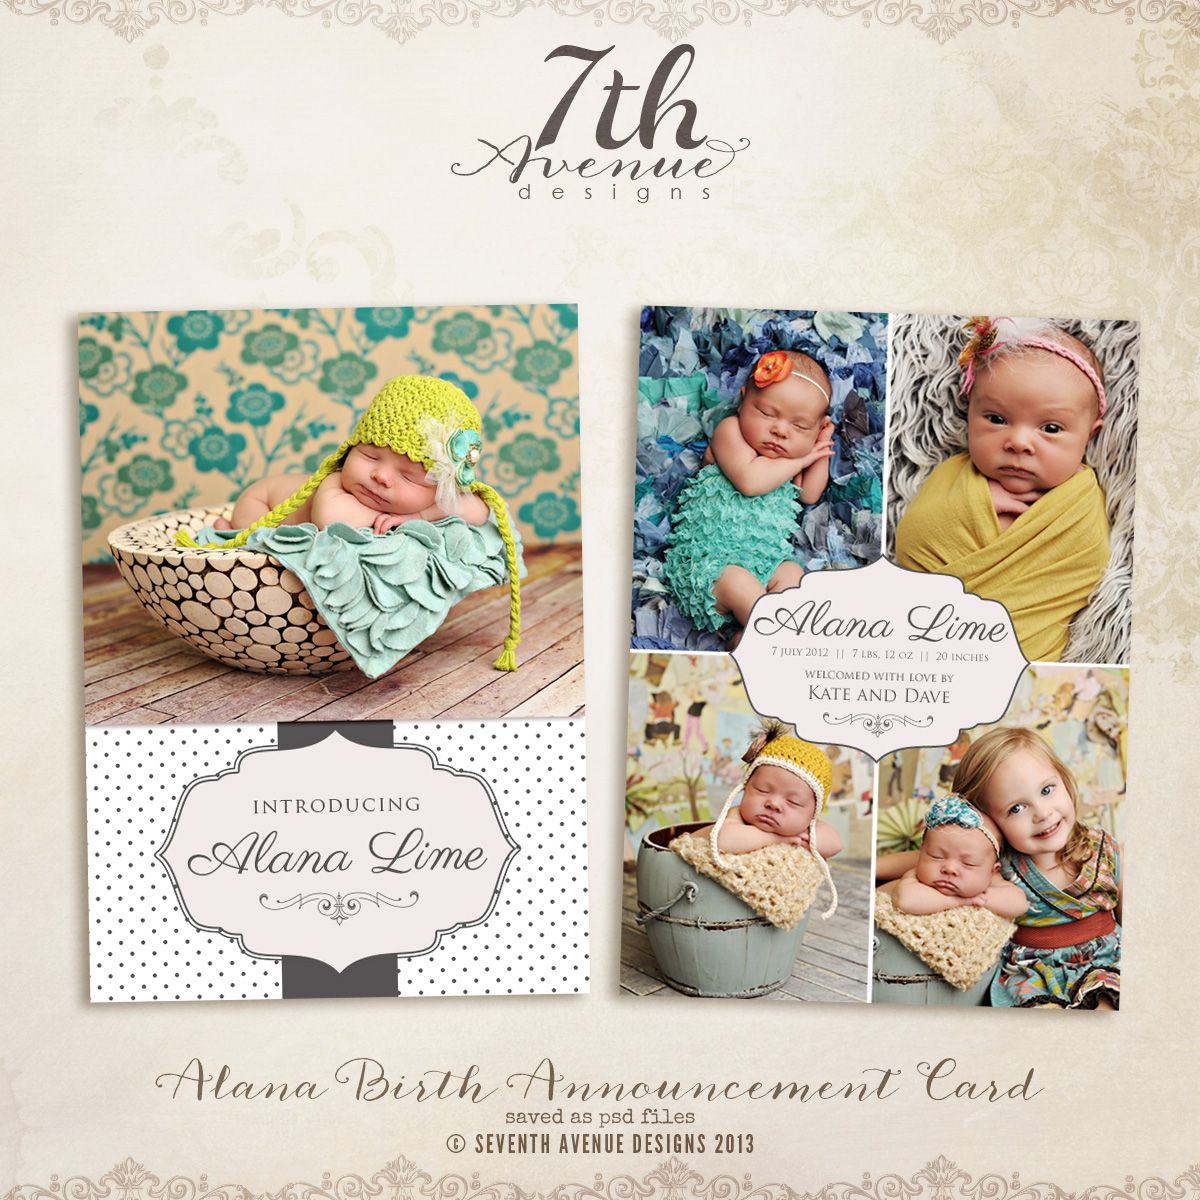 Alana Birth Announcement Card Templates